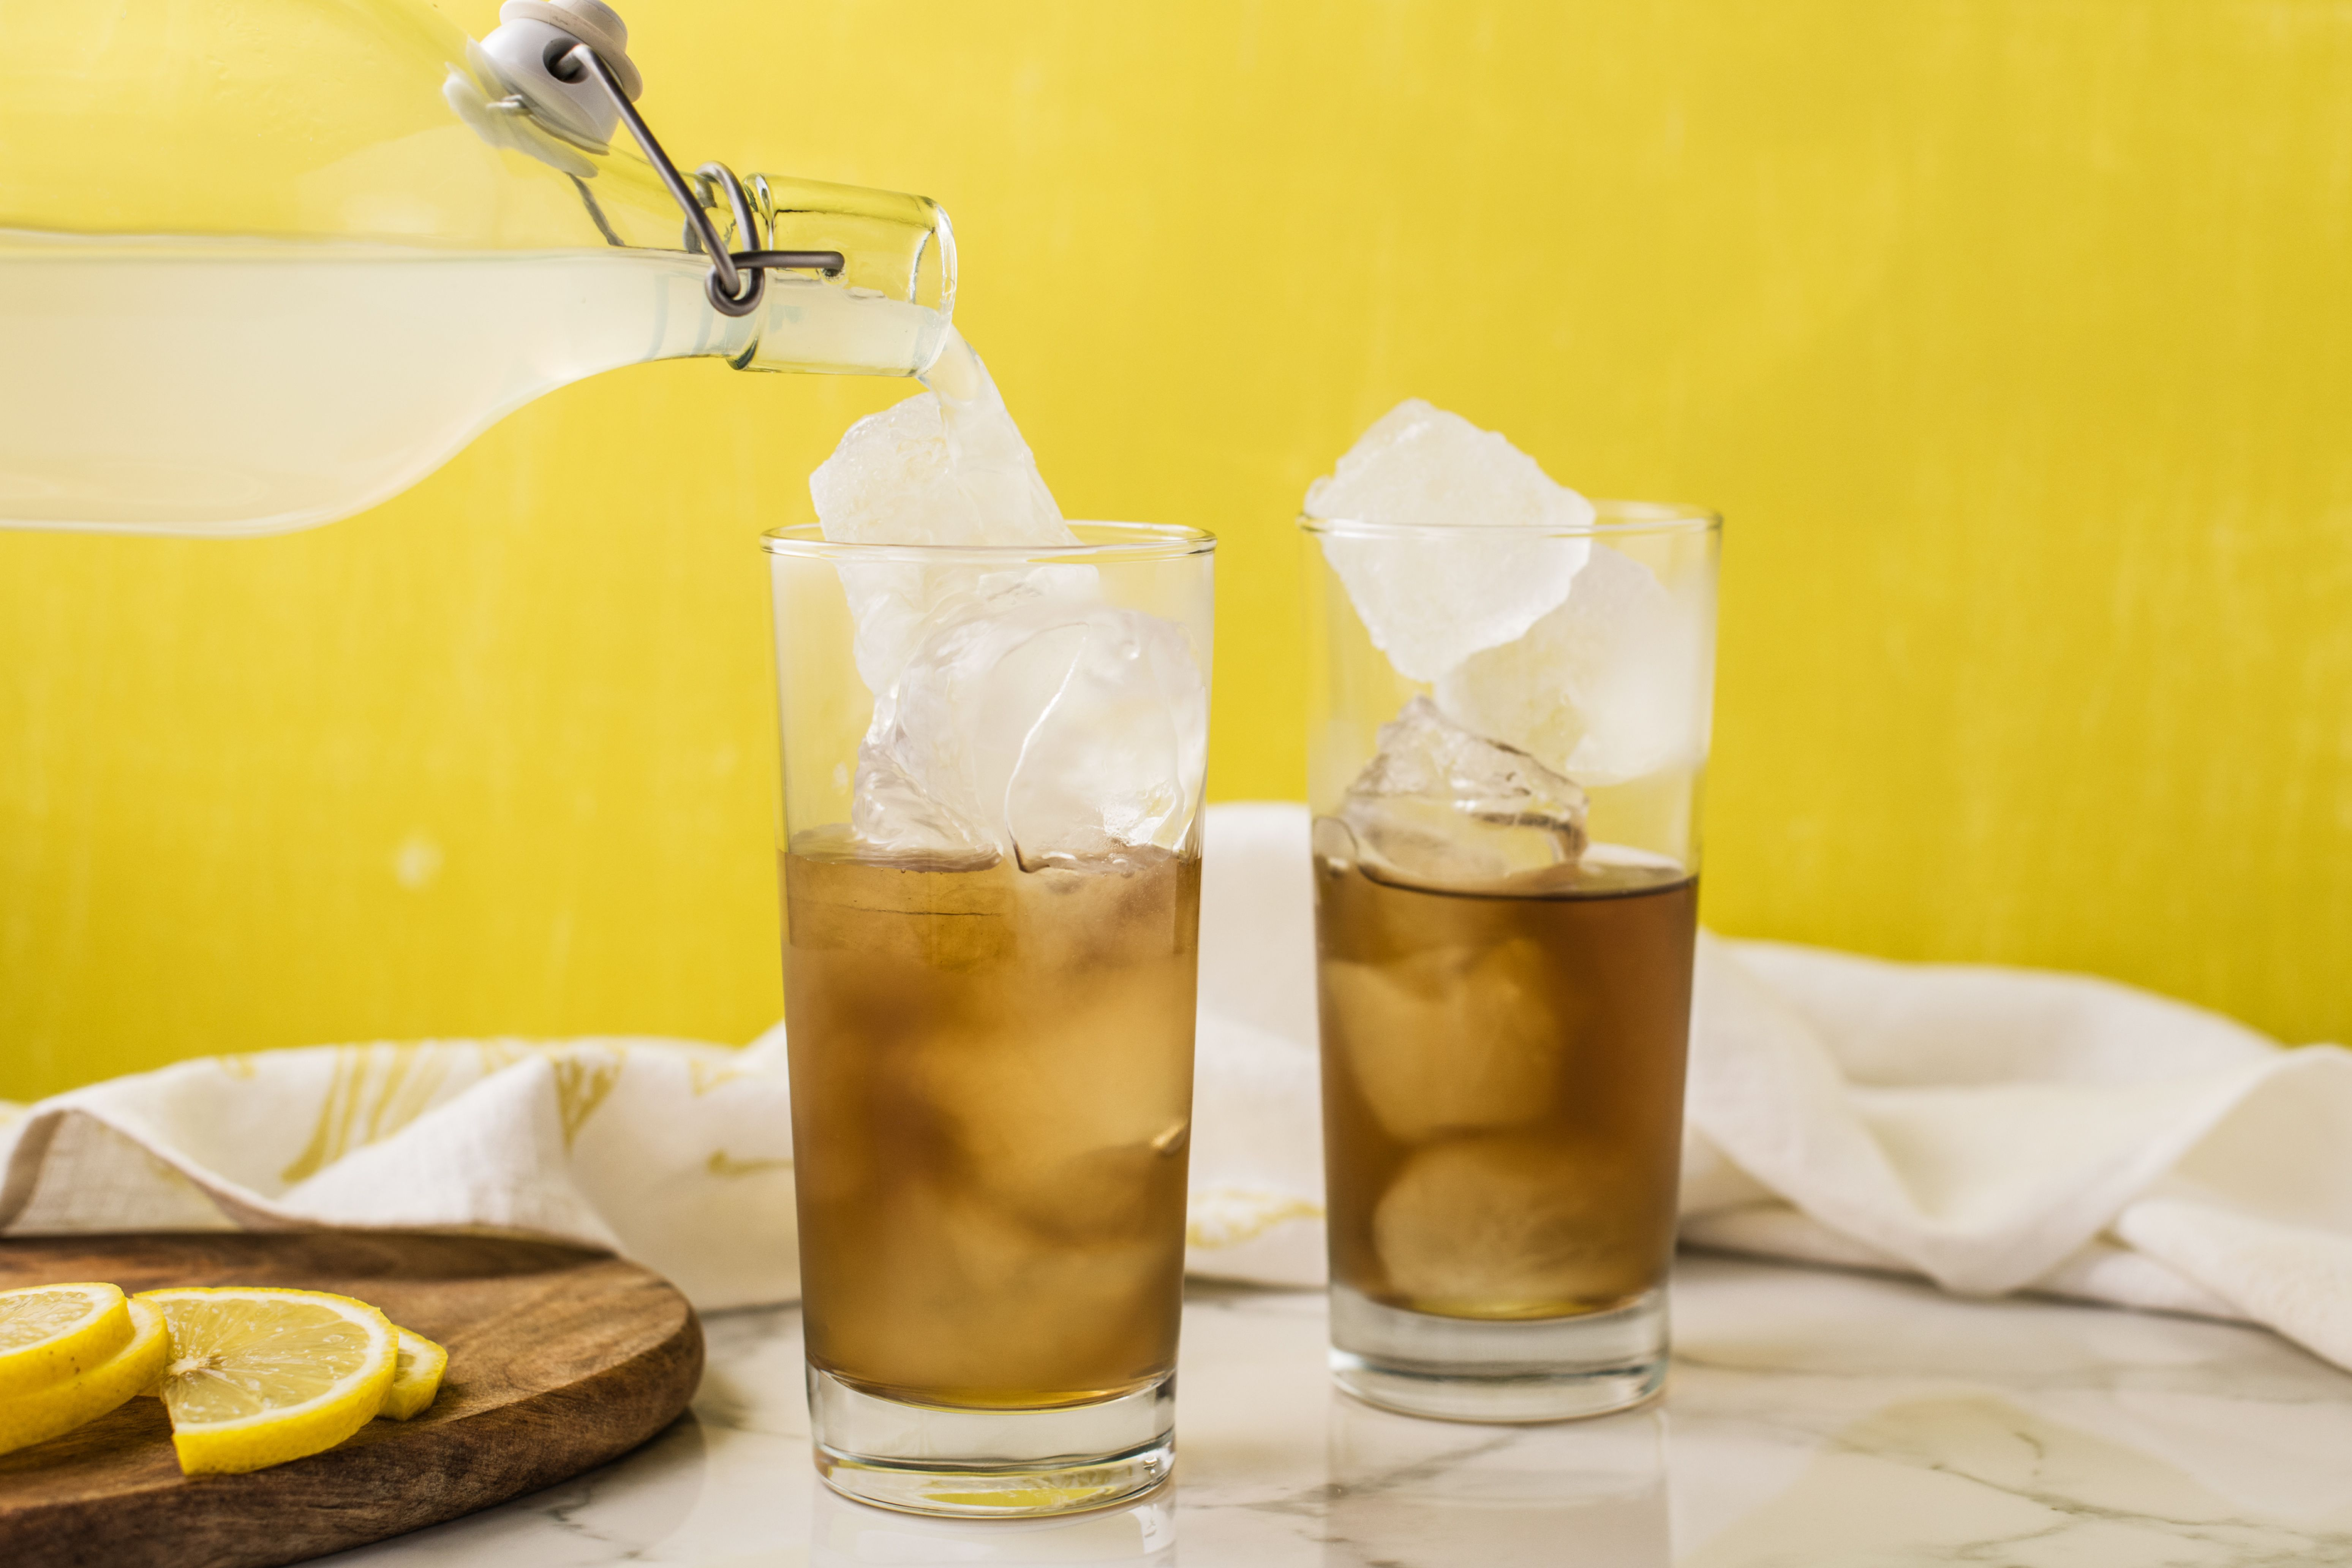 Lemonade being poured into a glass of iced tea